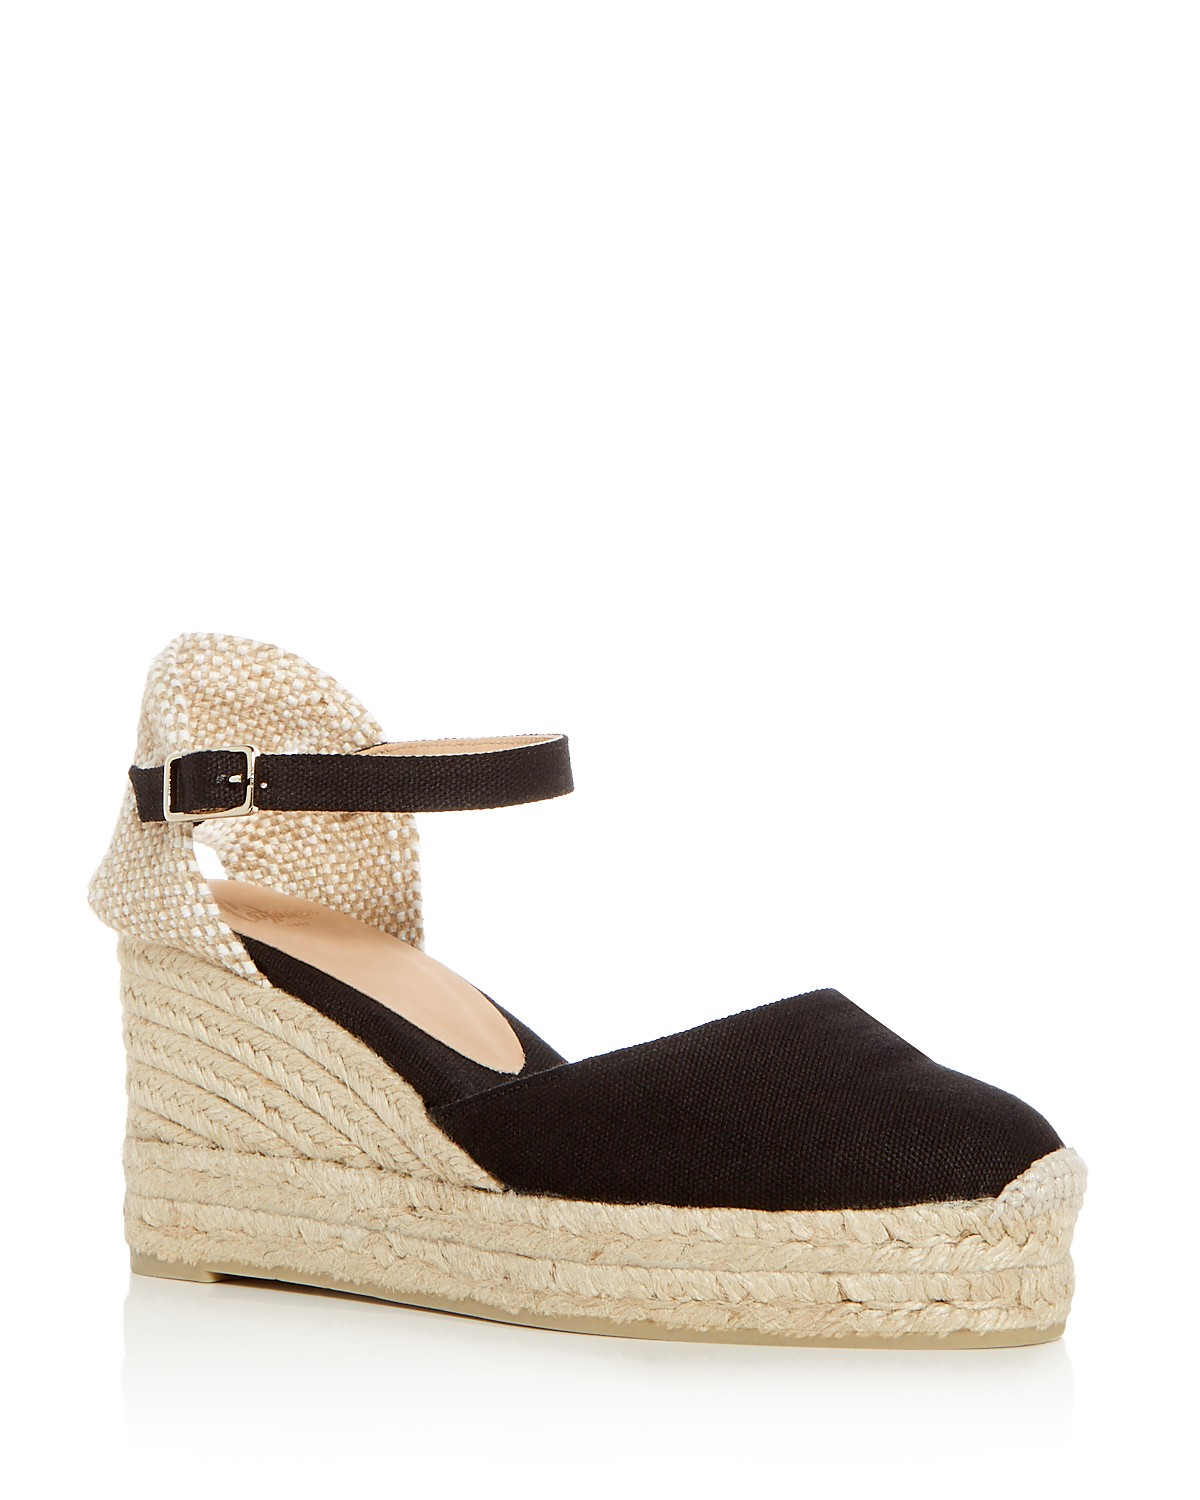 Castañer ankle strap espadrille sandals cheap sale professional clearance best wholesale discount low price countdown package for sale clearance cheapest price Q4dErEye